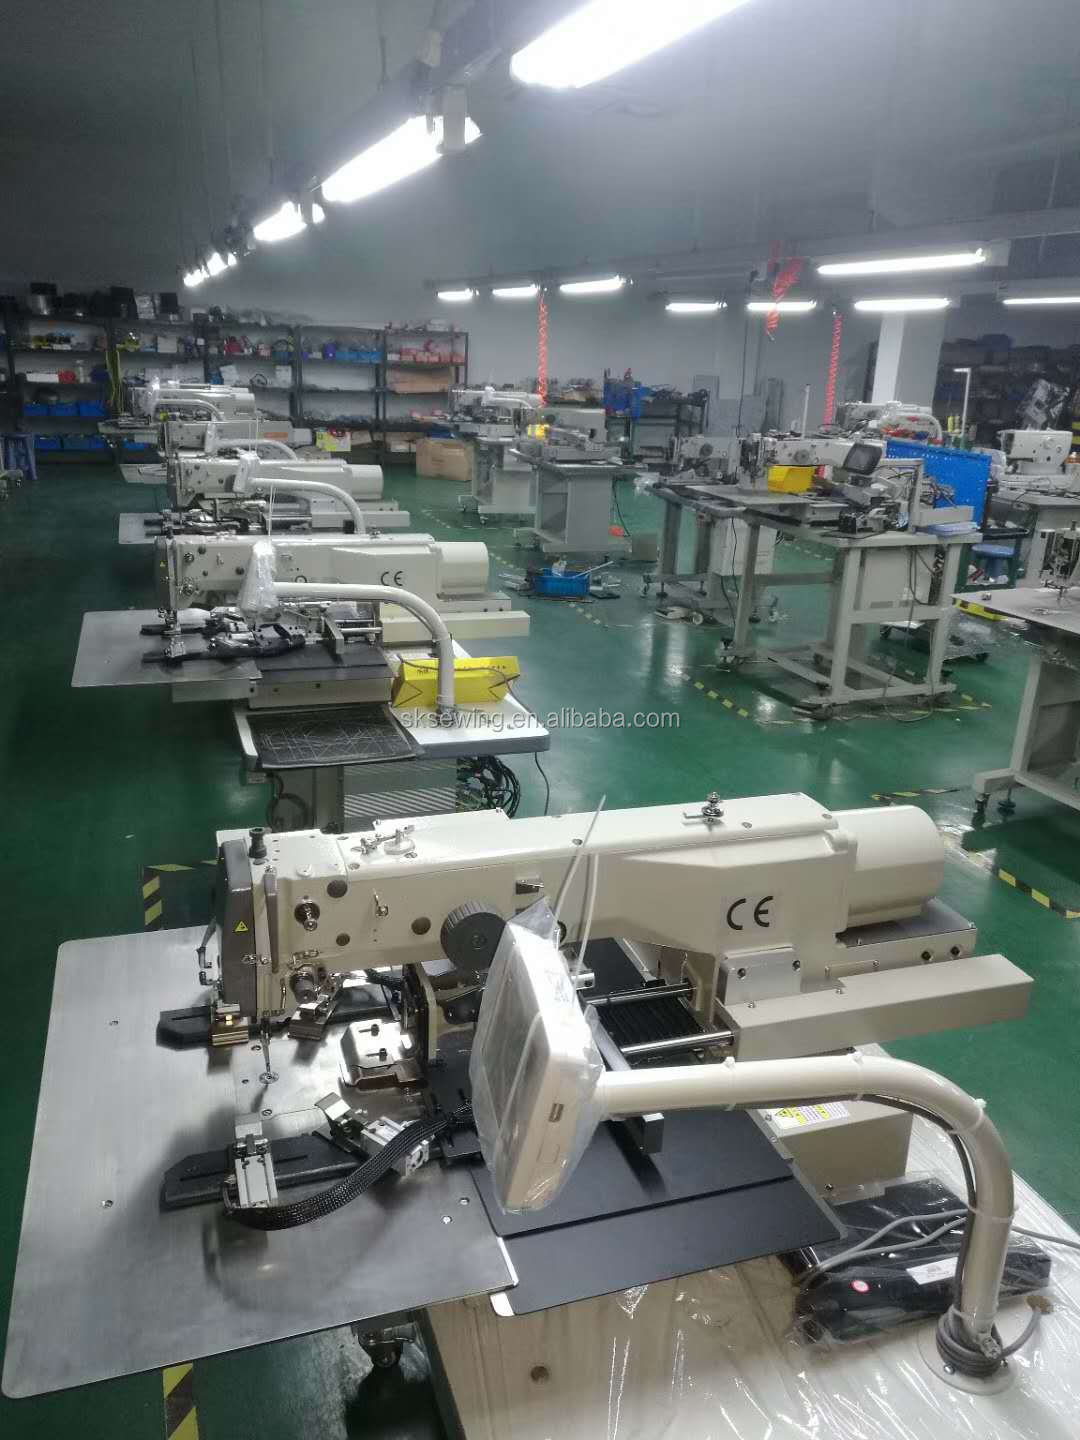 3020 automatic Computer pattern MITSUBISHI industrial sewing machine